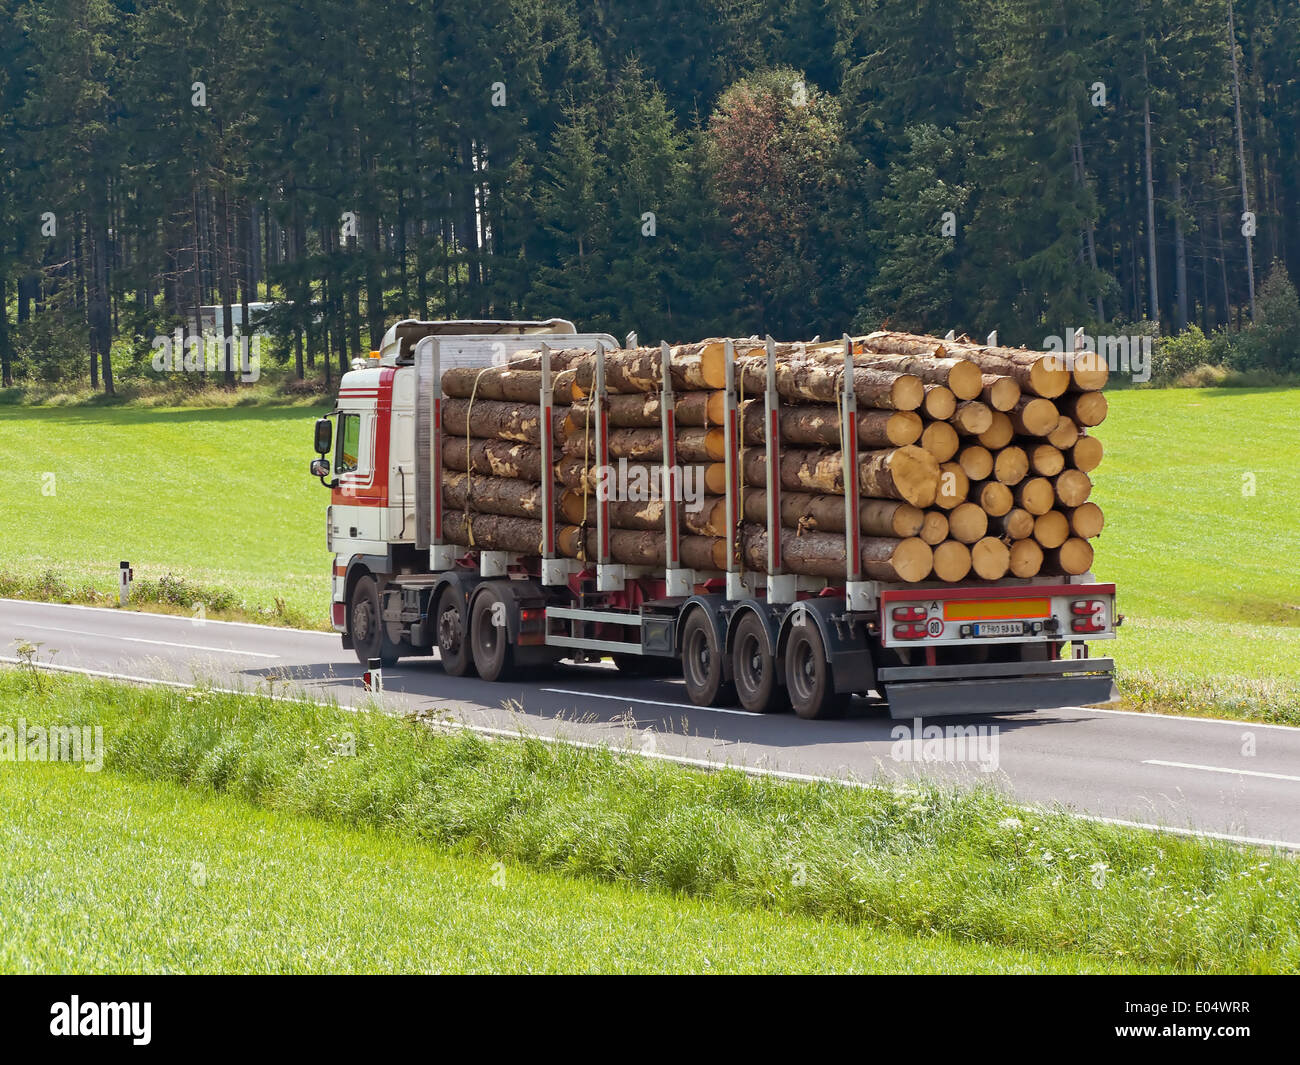 Holztransport High Resolution Stock Photography and Images - Alamy